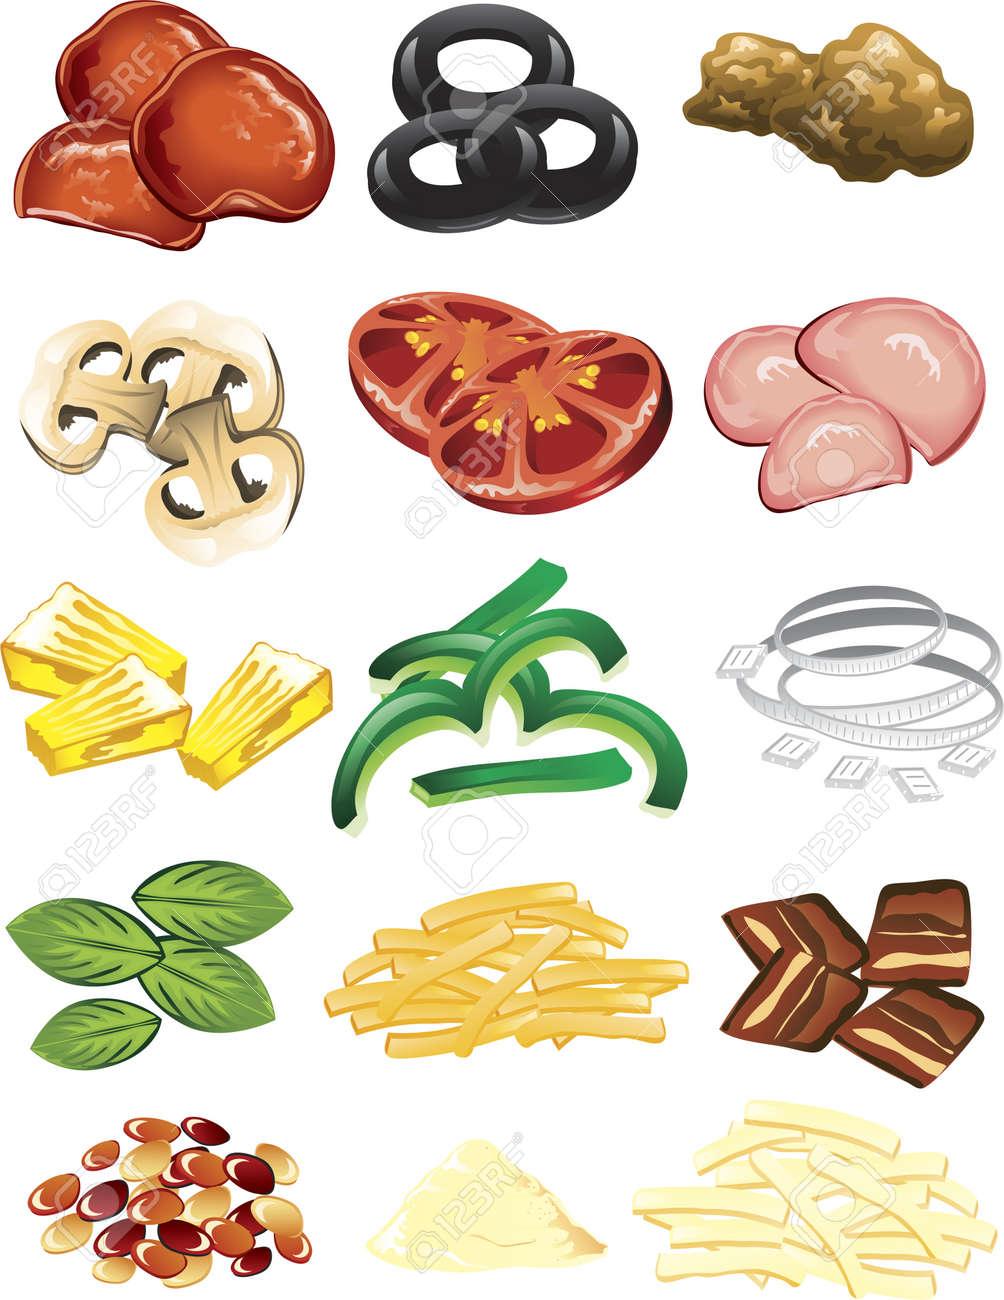 illustration of different pizza toppings and cheese royalty free rh 123rf com pizza toppings clip art free pizza toppings clipart